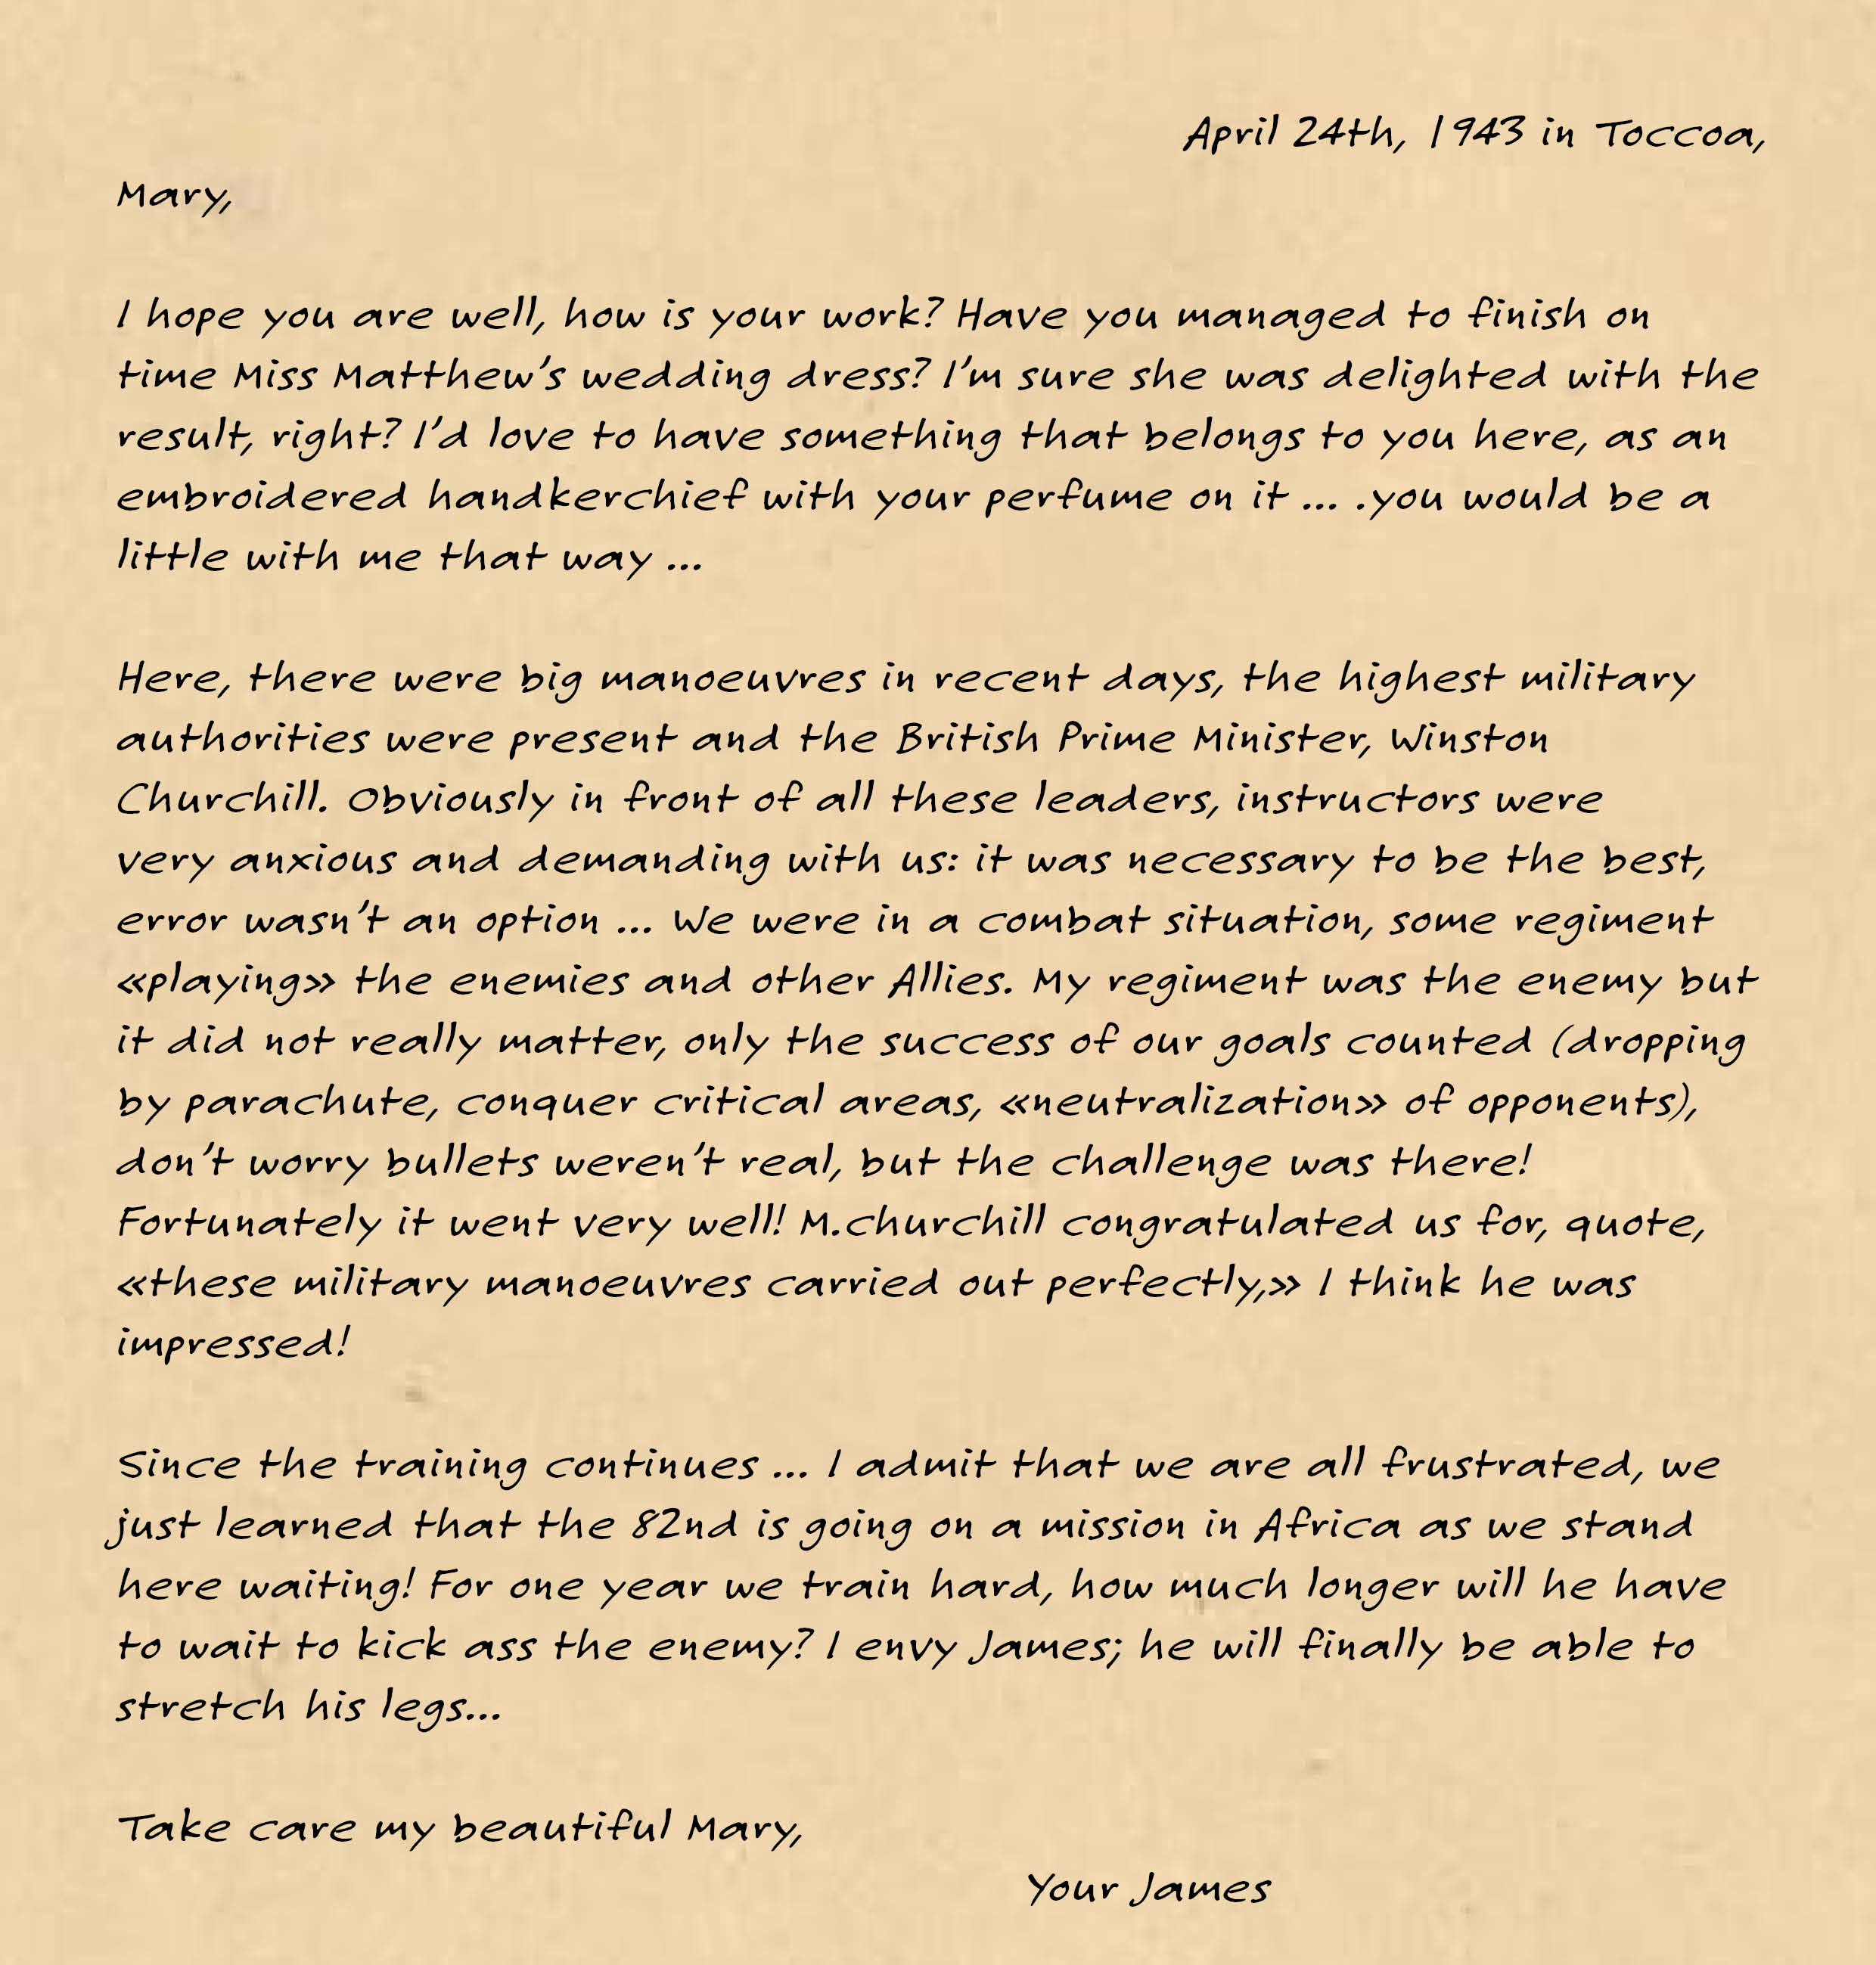 james' letter for mary